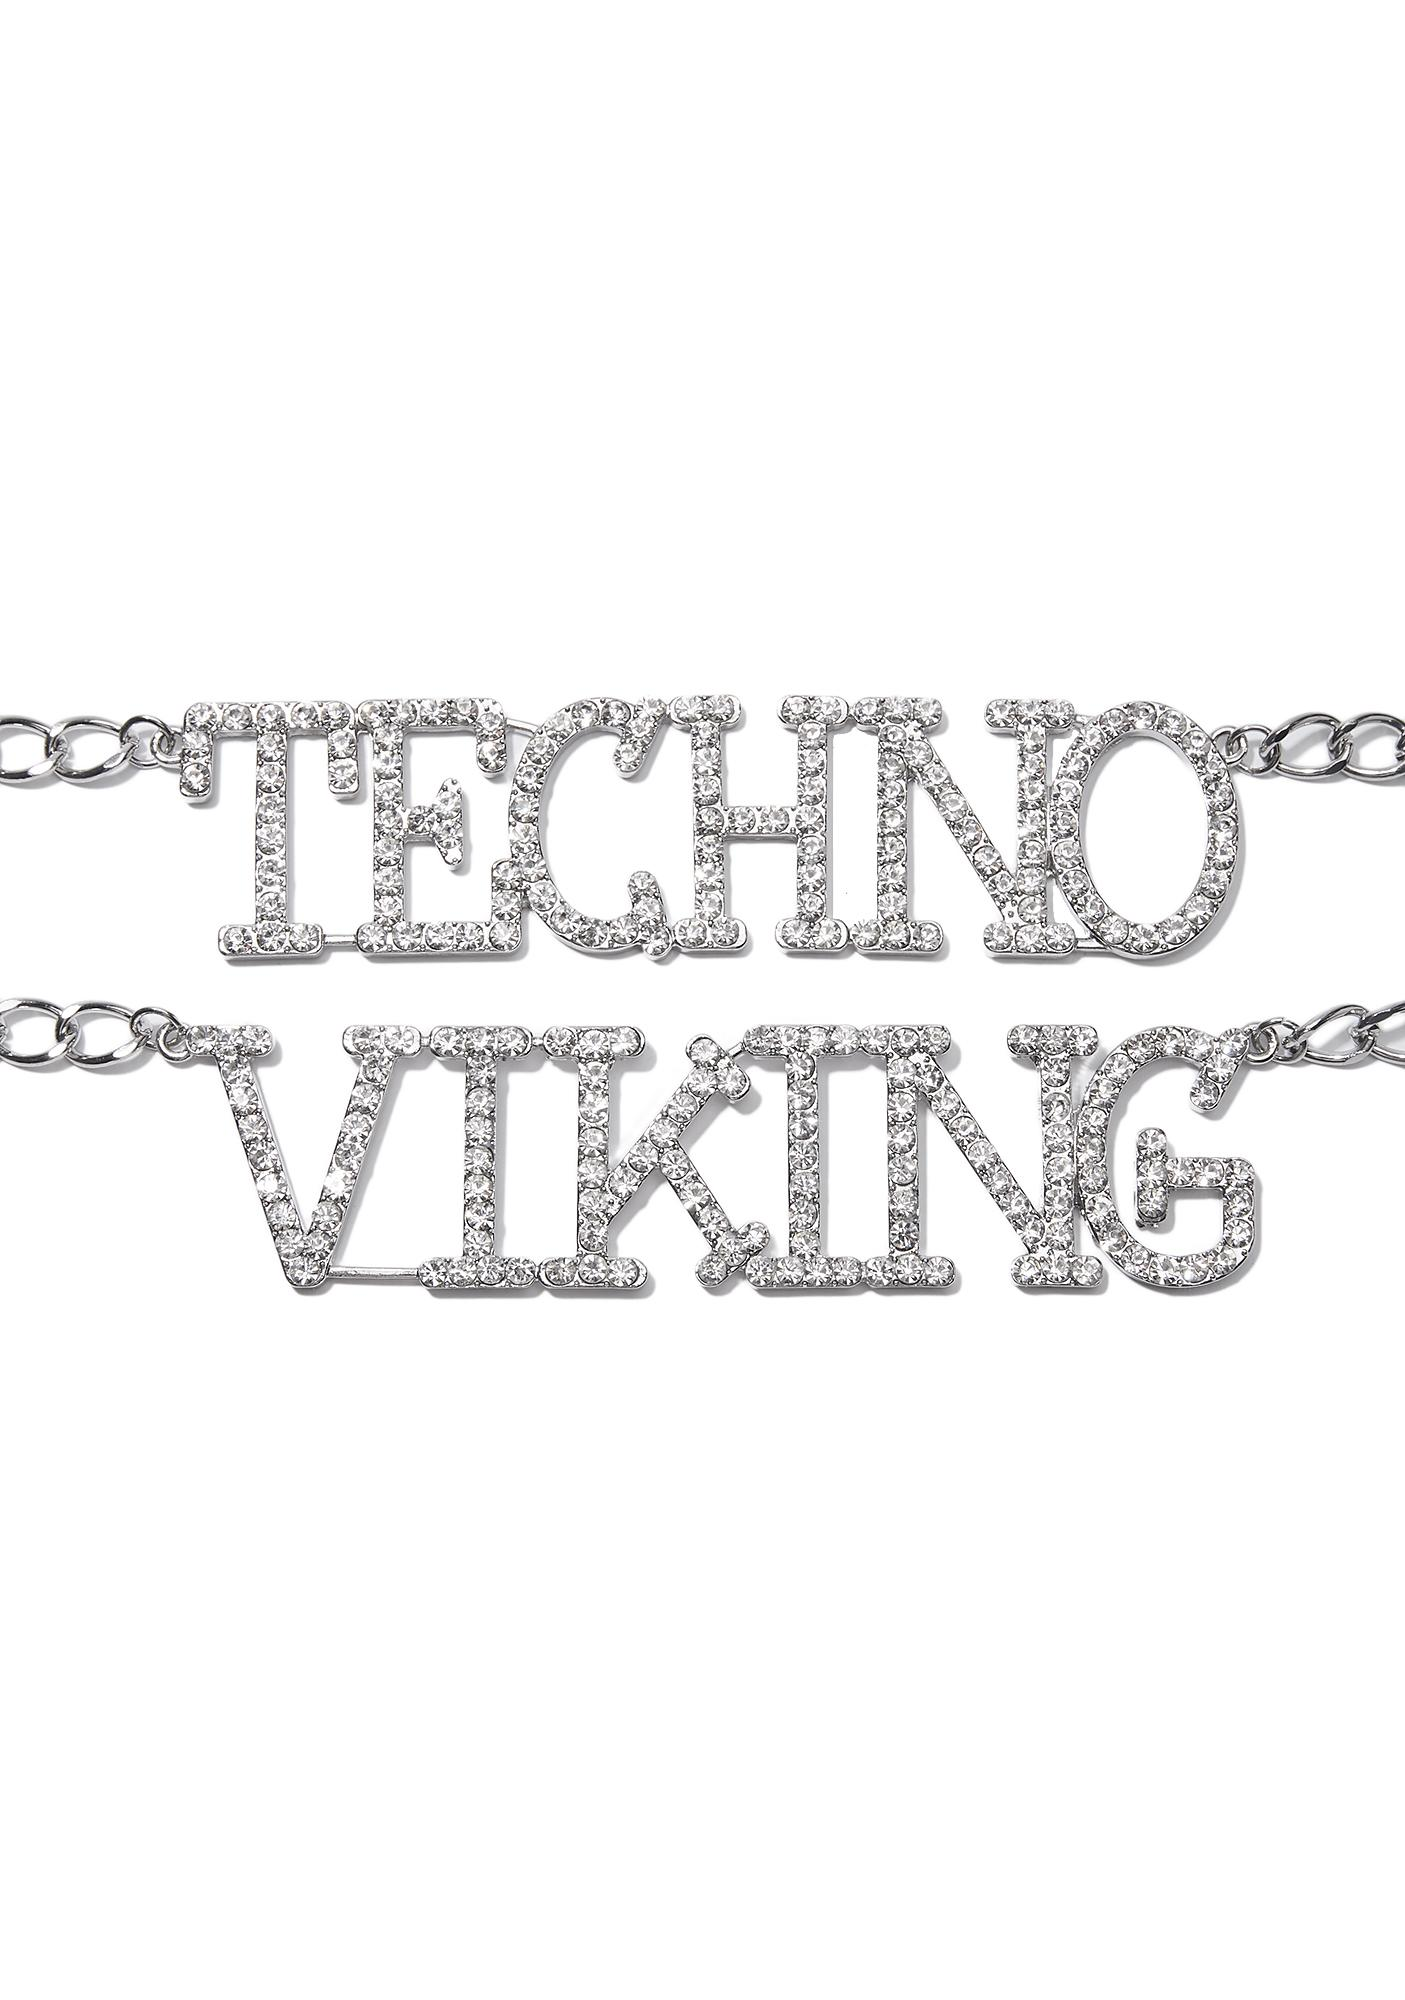 Techno Viking Chain Belt